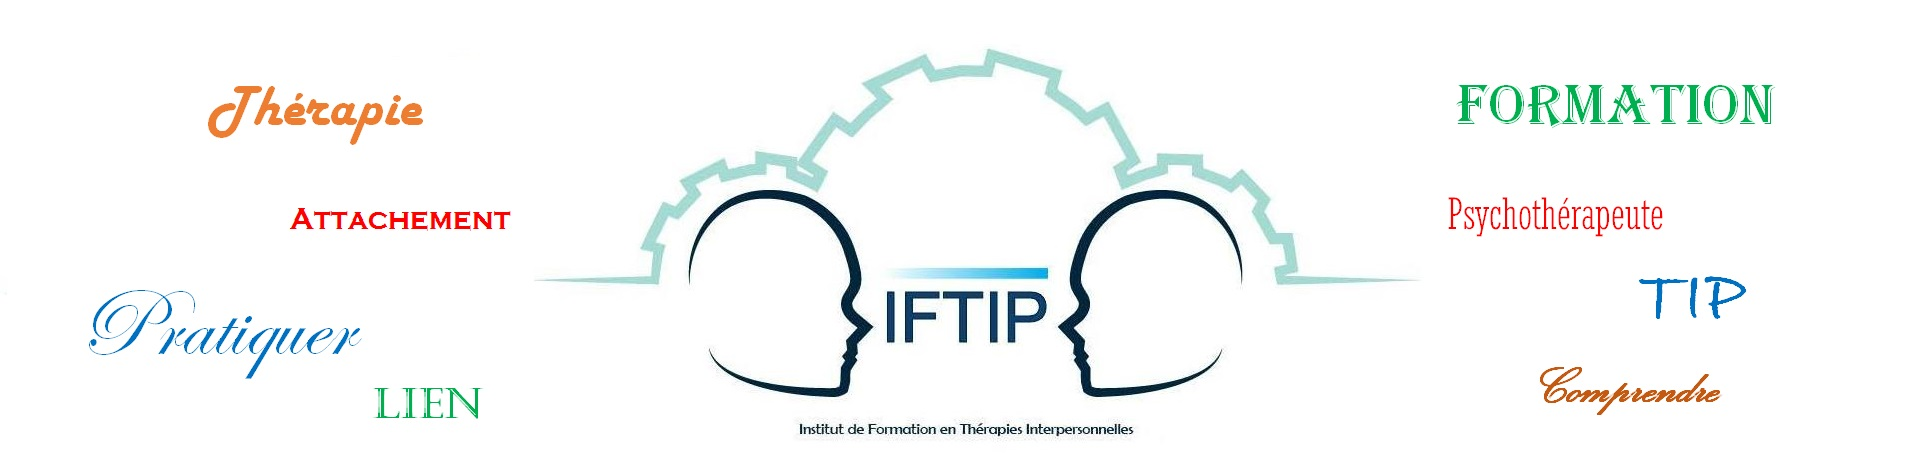 Institut de Formation en Thérapies Interpersonnelles